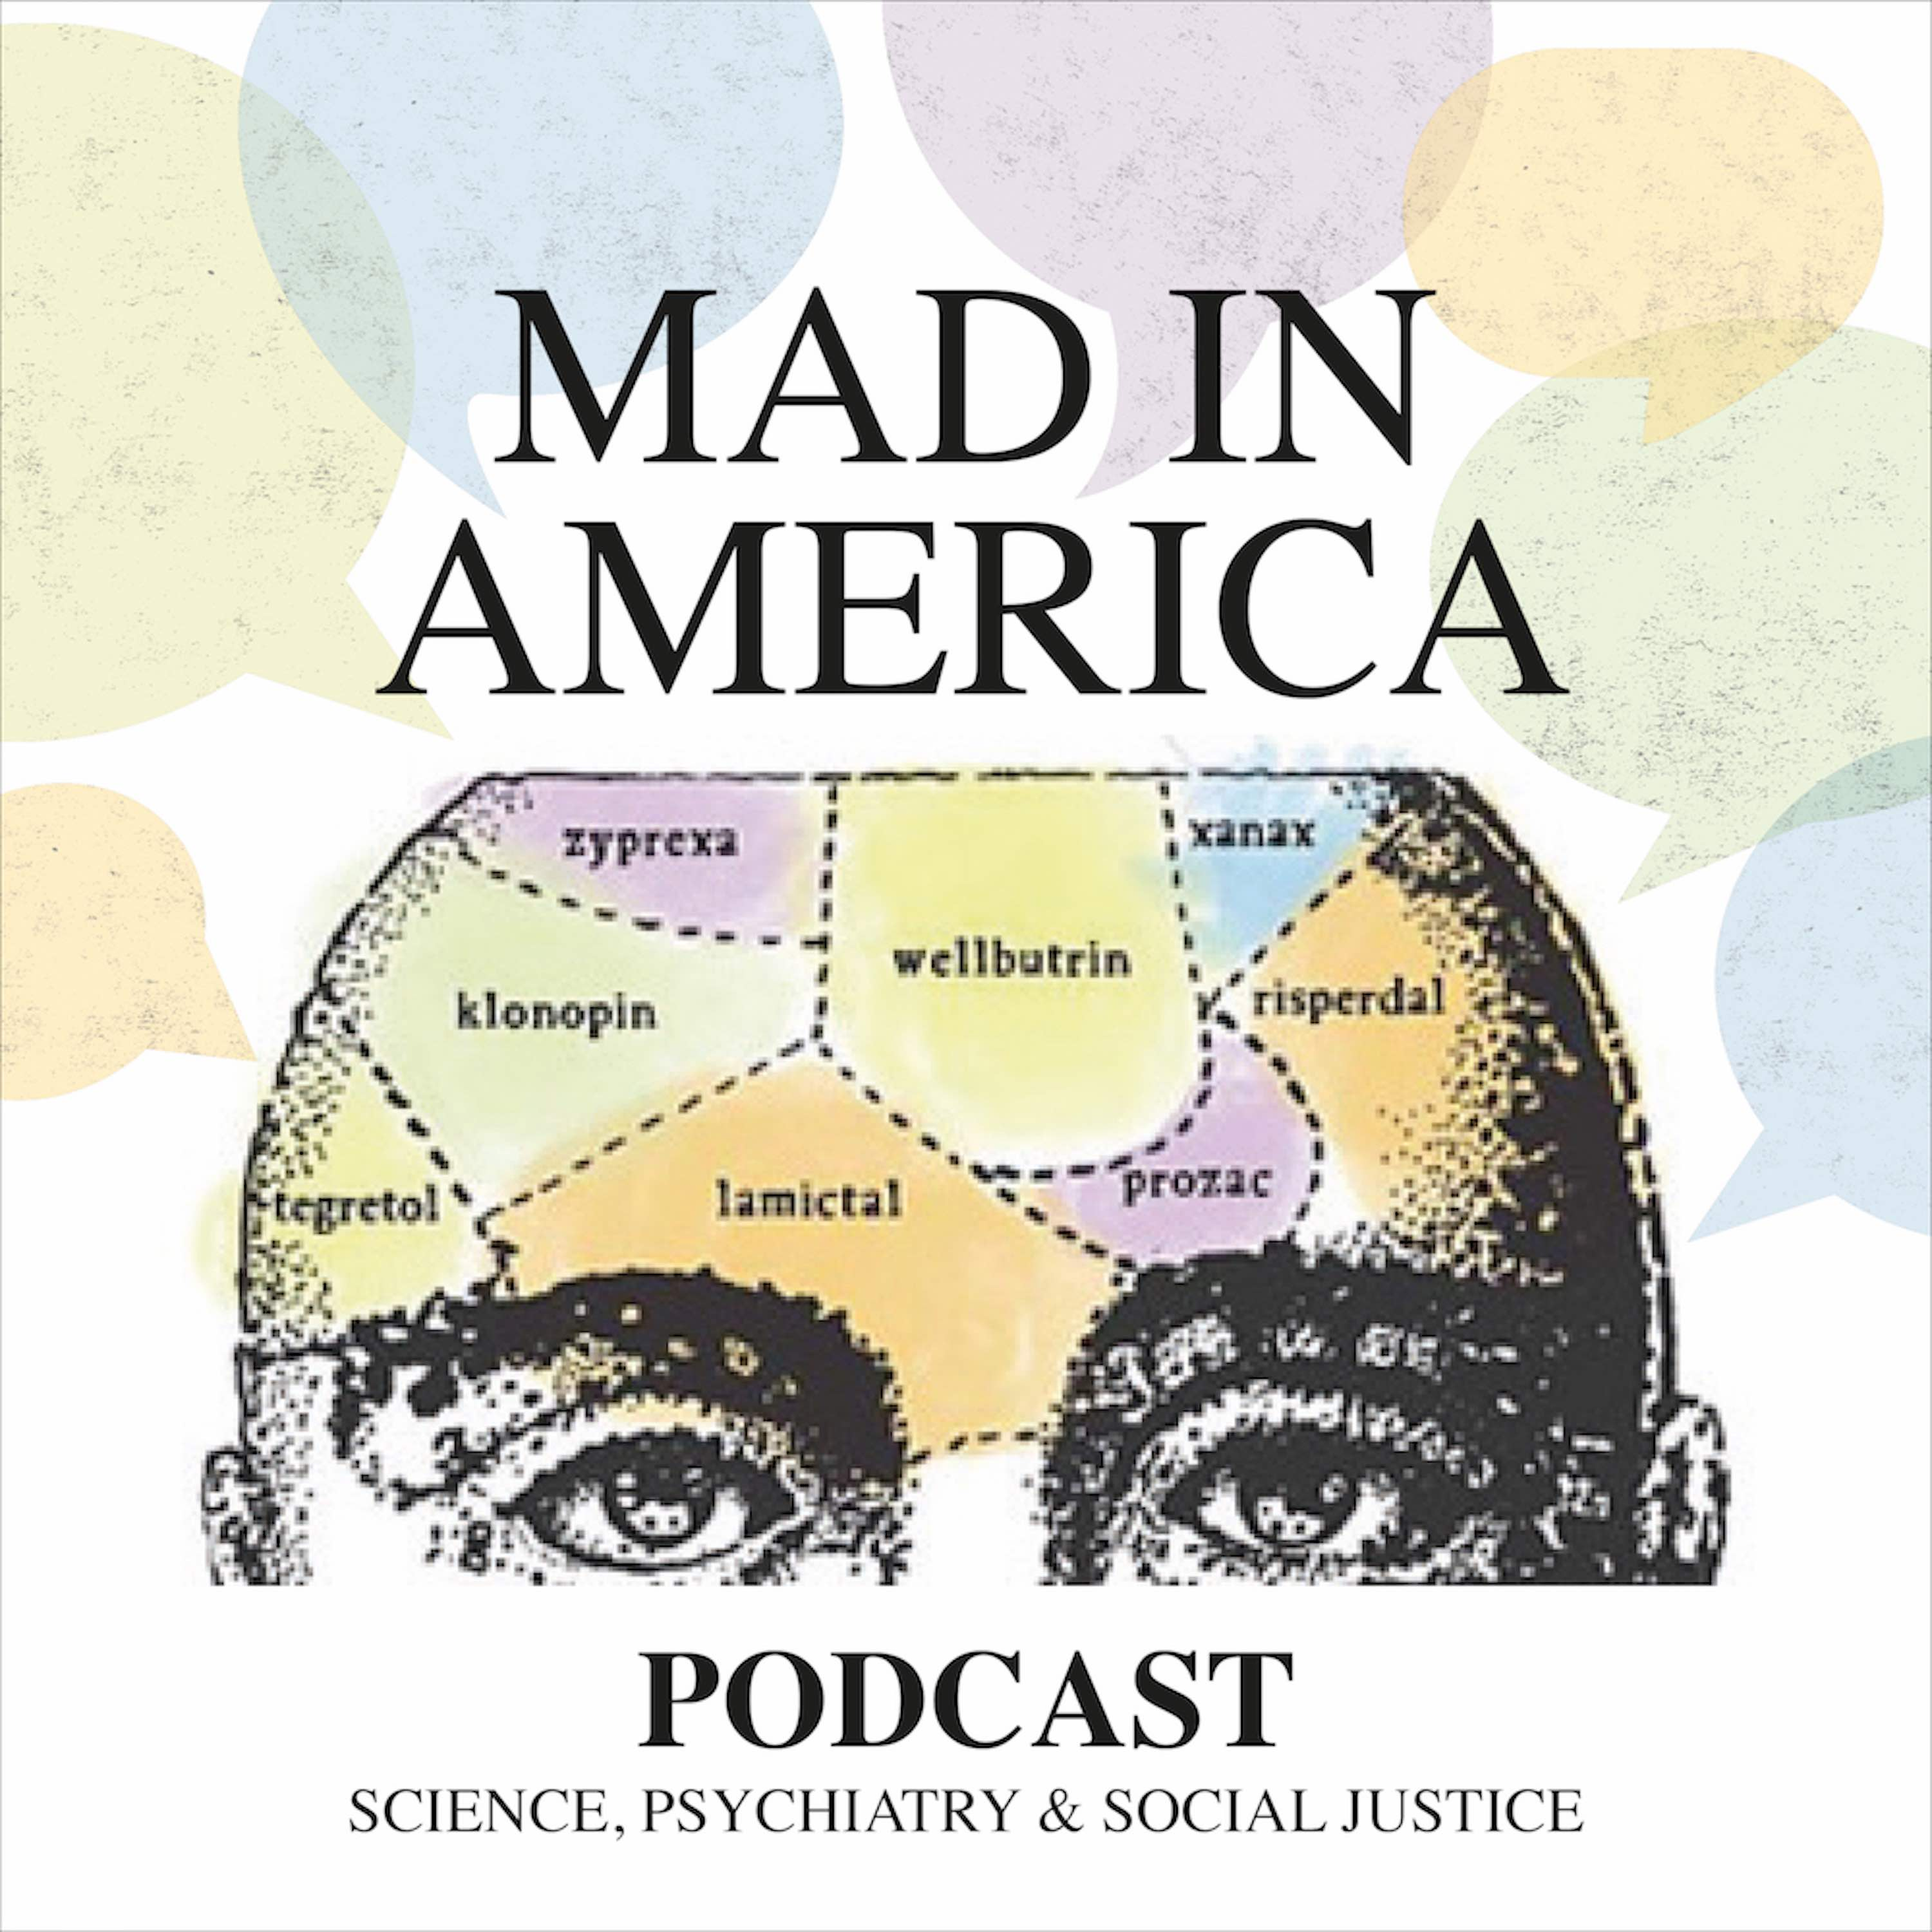 Mad in America: Rethinking Mental Health - Steven C Hayes - A Liberated Mind